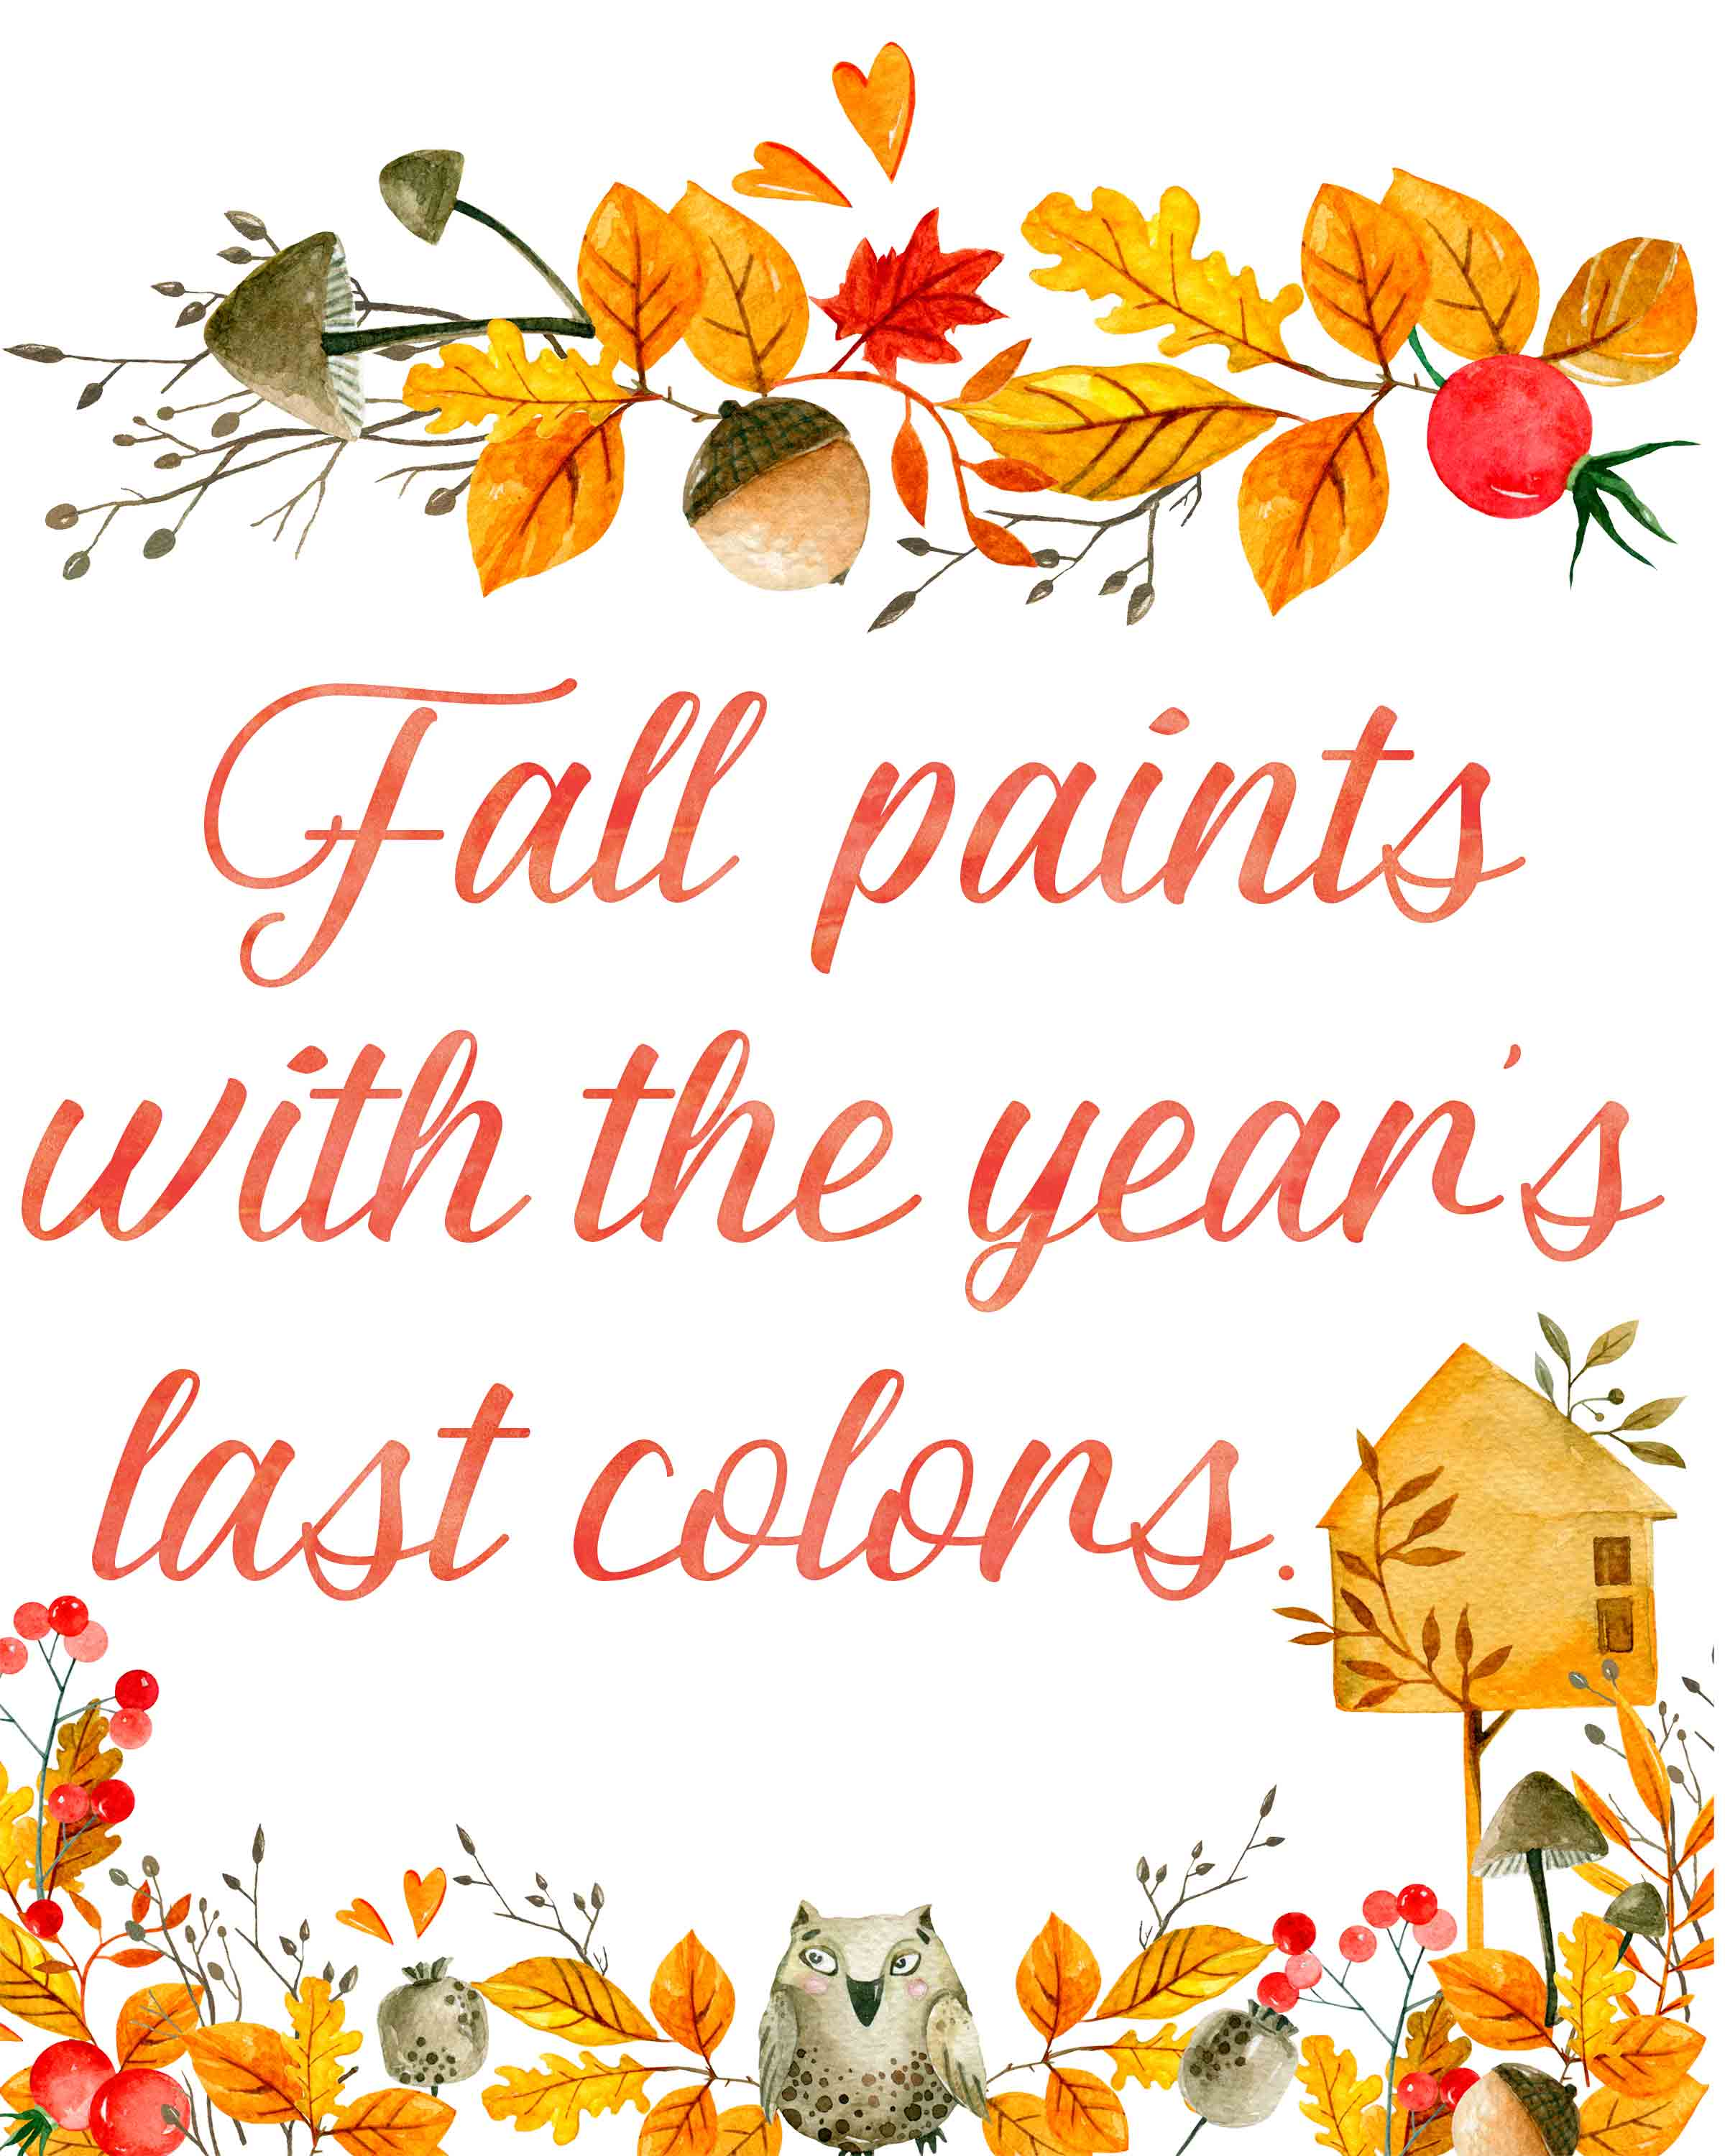 Fall Paints with the year's last colors. Free Printable Fall Wall Art. 3 free fall wall art printable designs to decorate your home or office. Celebrate autumn! #free #printable #freeprintable #fall #autumn #wallart #fallart #autumnart